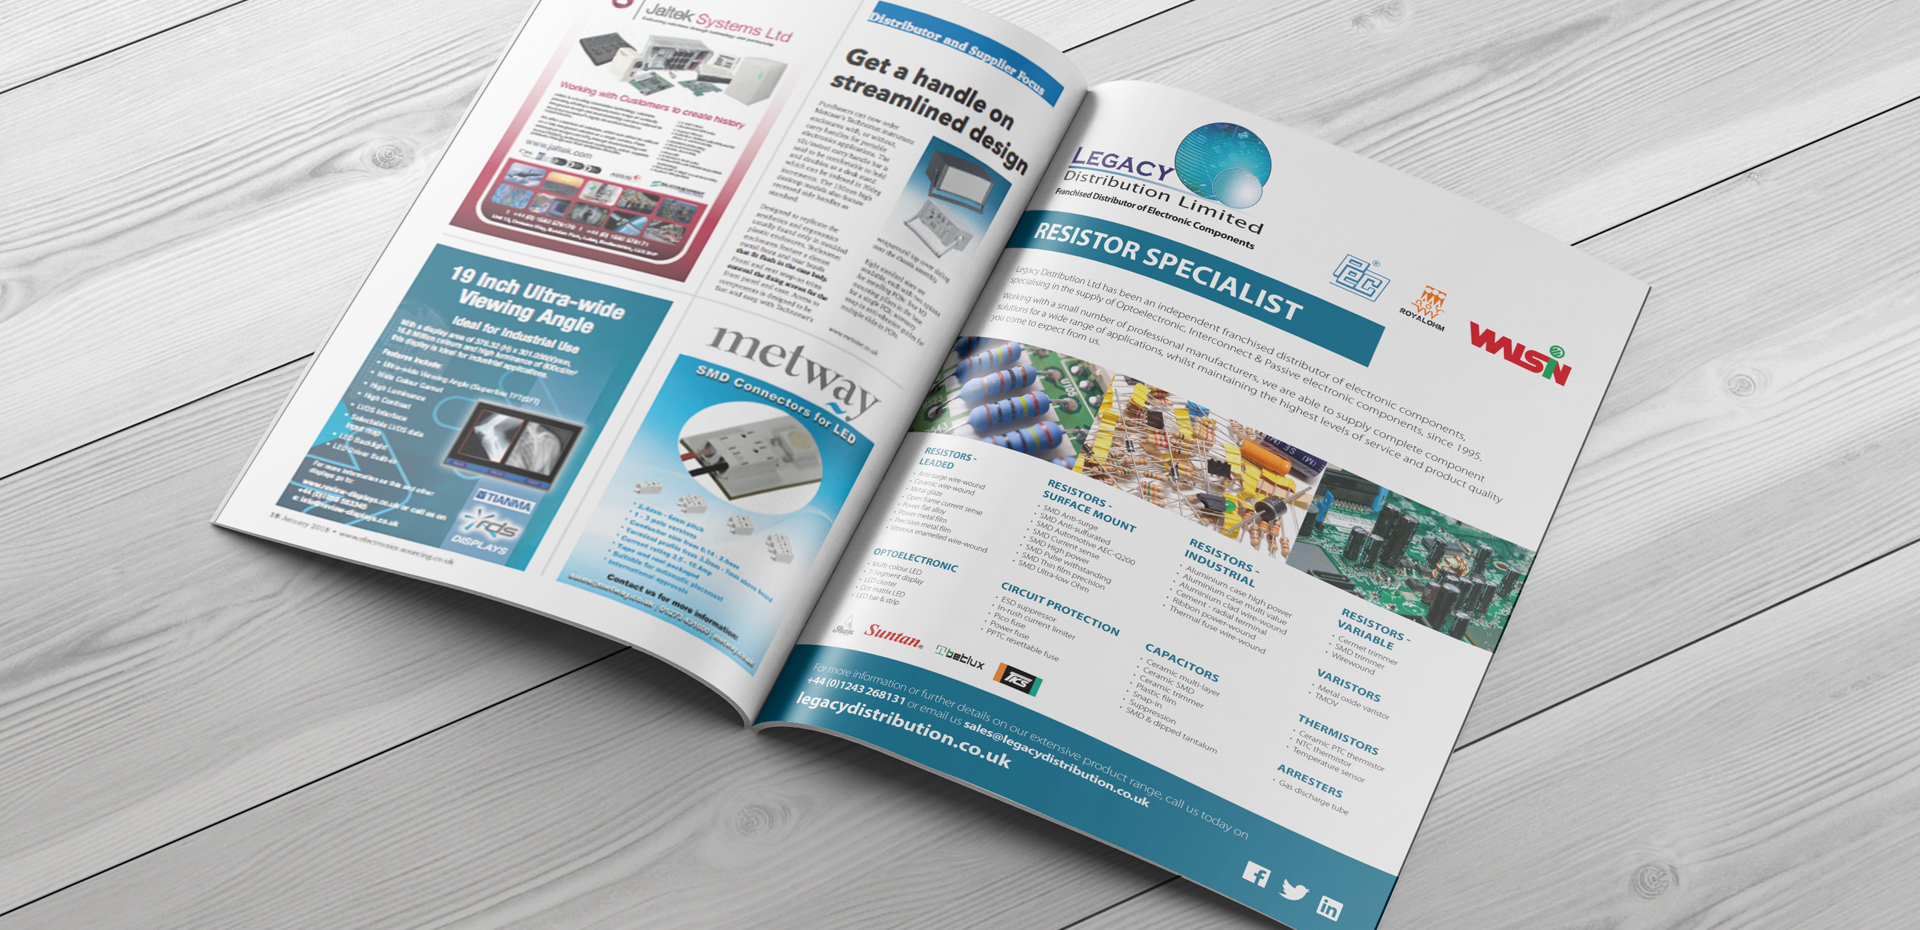 Legacy Distribution industry specific magazine advert showcased in a double page spread